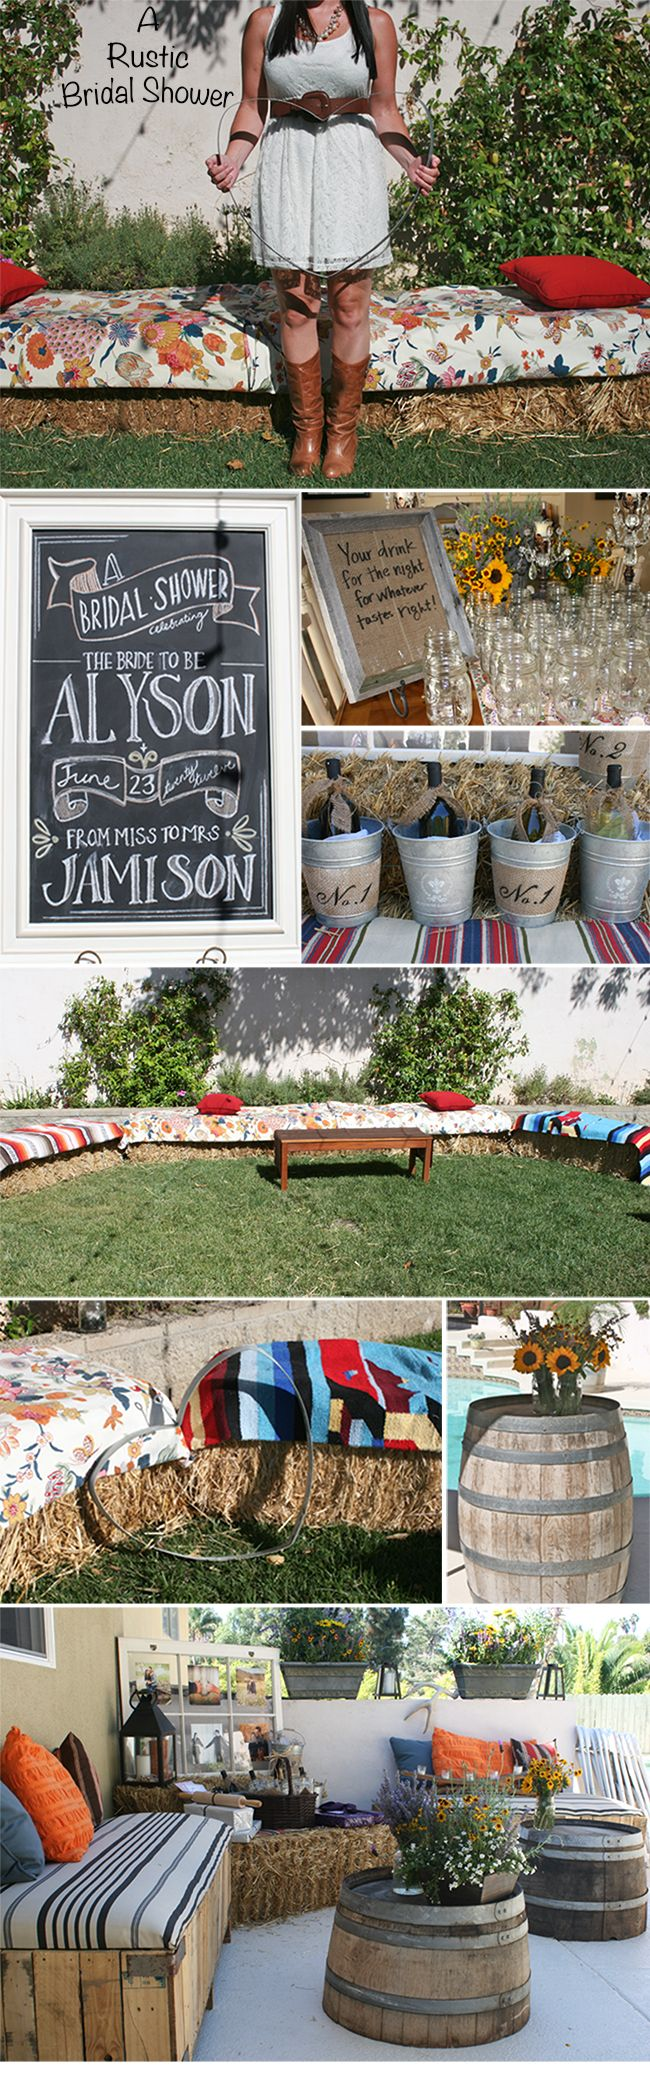 Rustic bridal shower! Love everything about this :)!